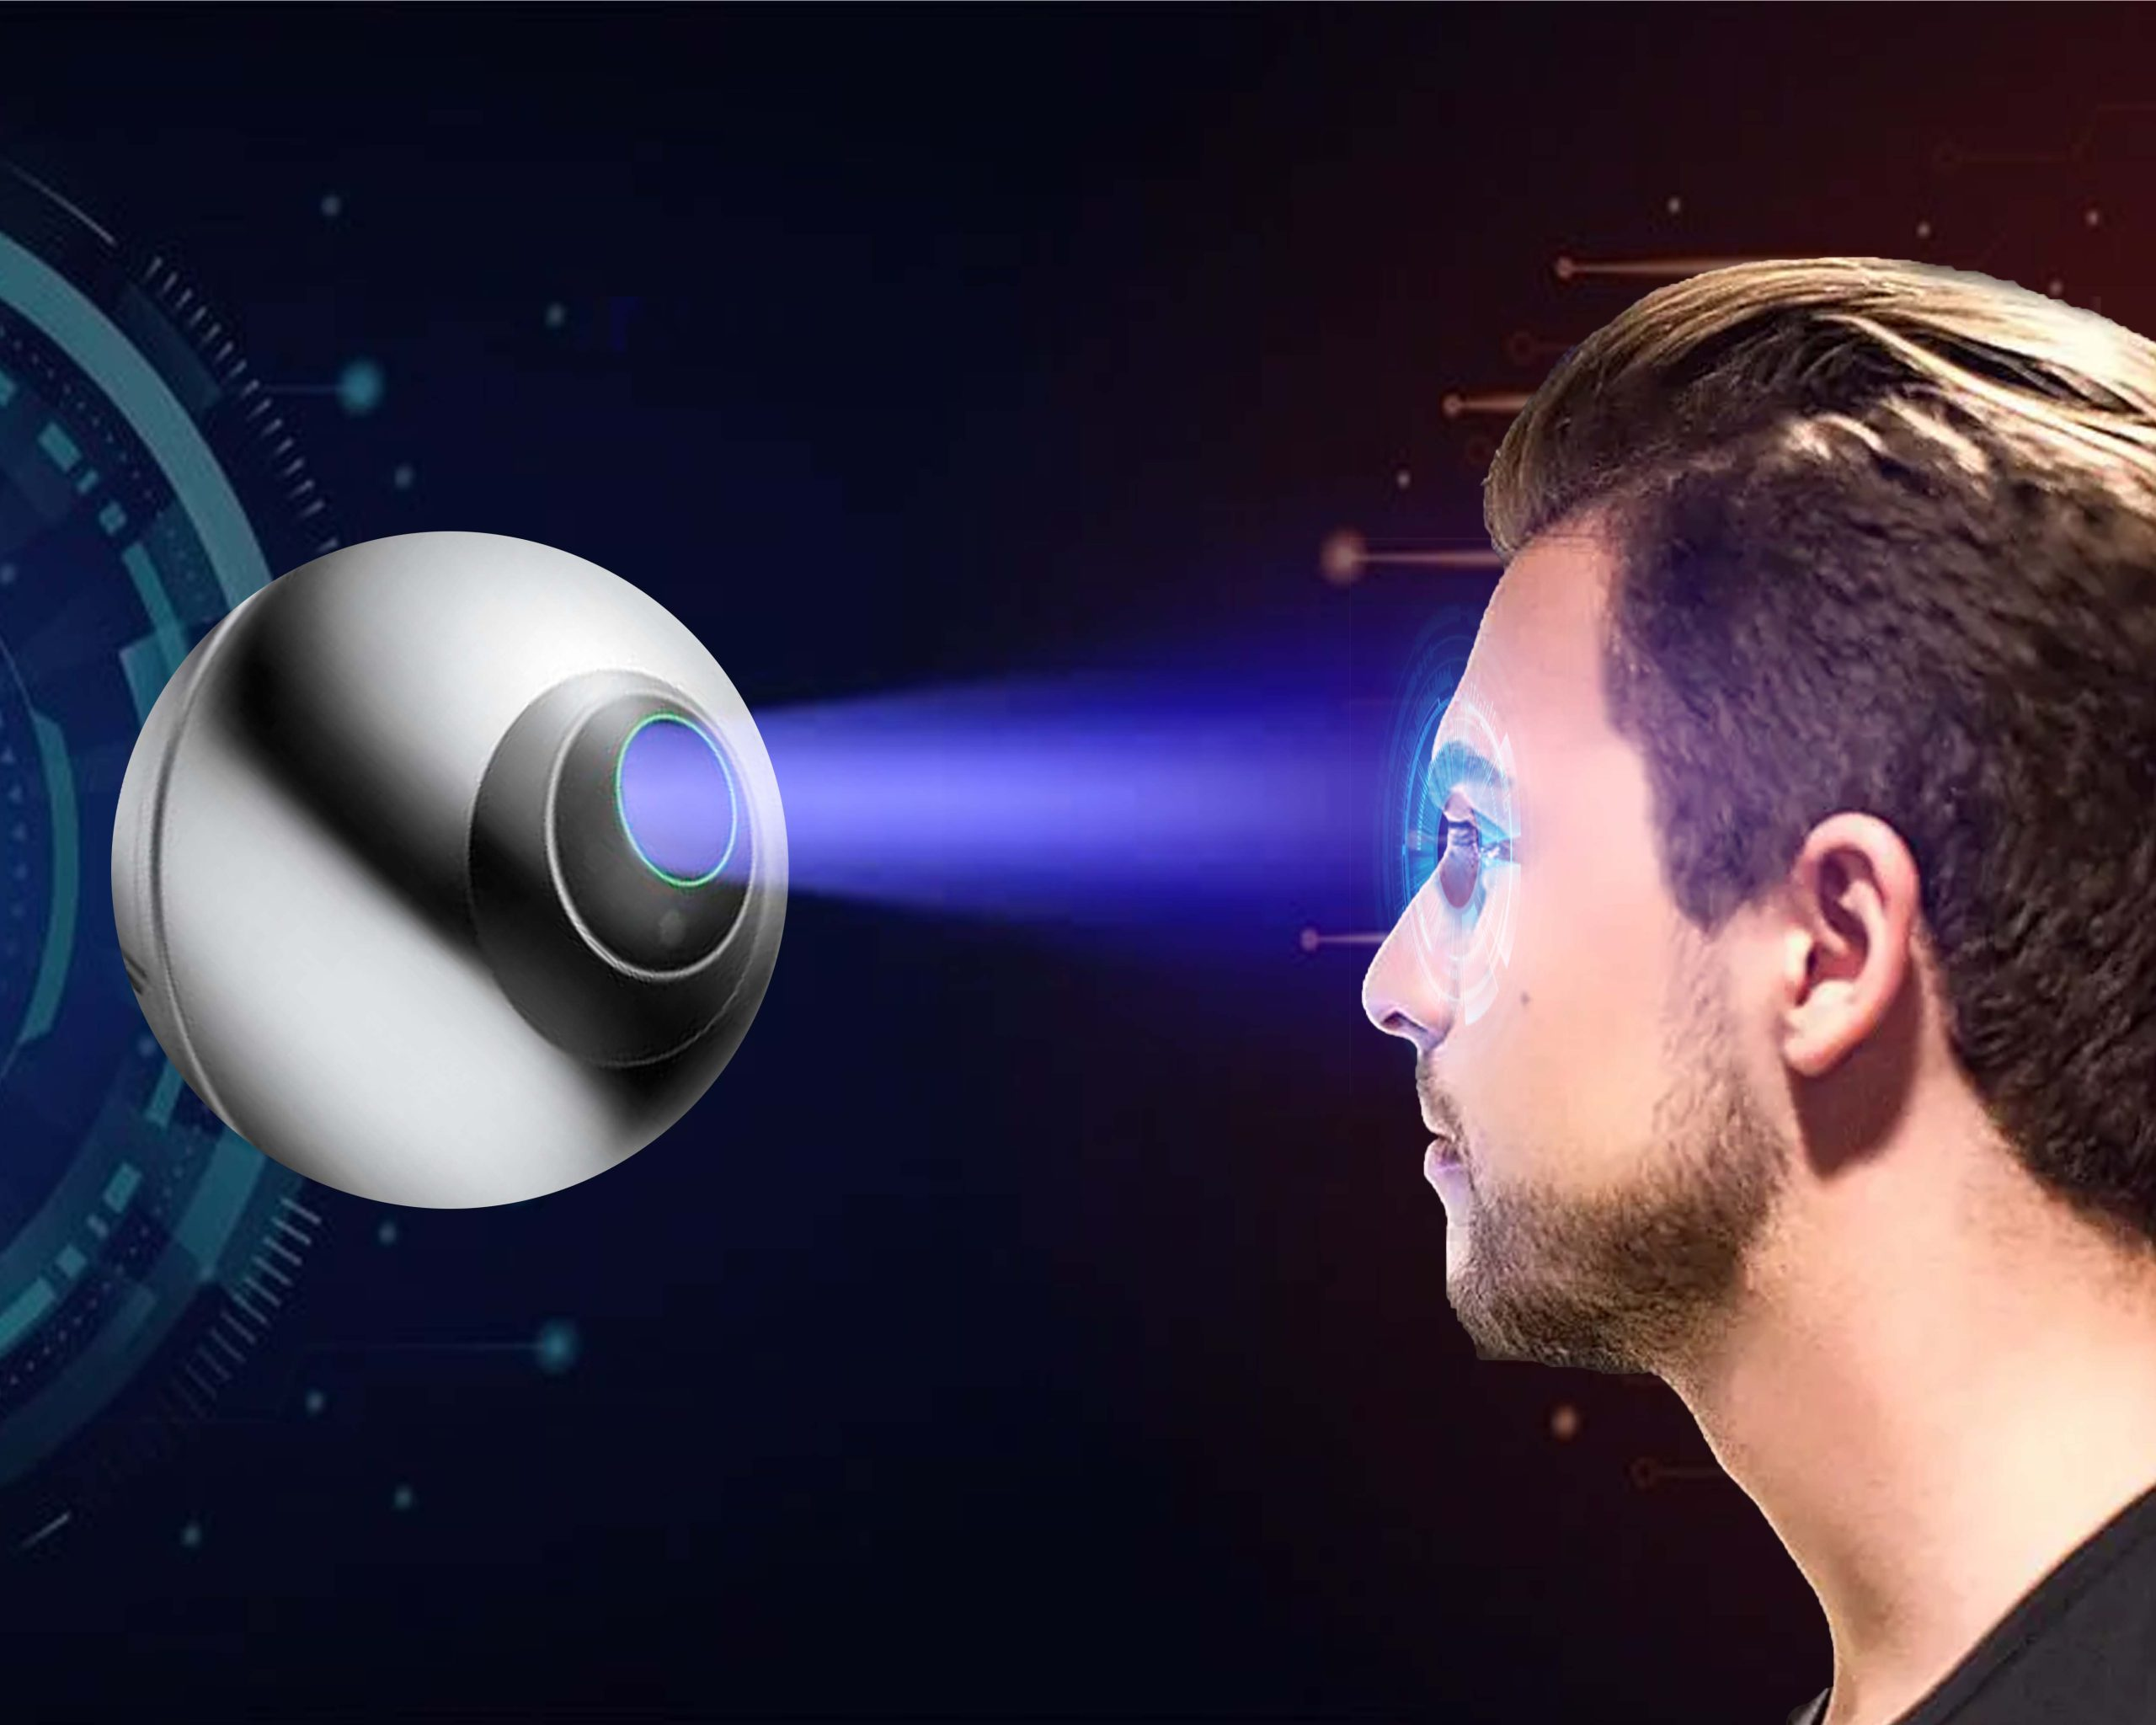 Worldcoin: Orb-shaped devices as iris recognition scanners, plus free cryptocurrency